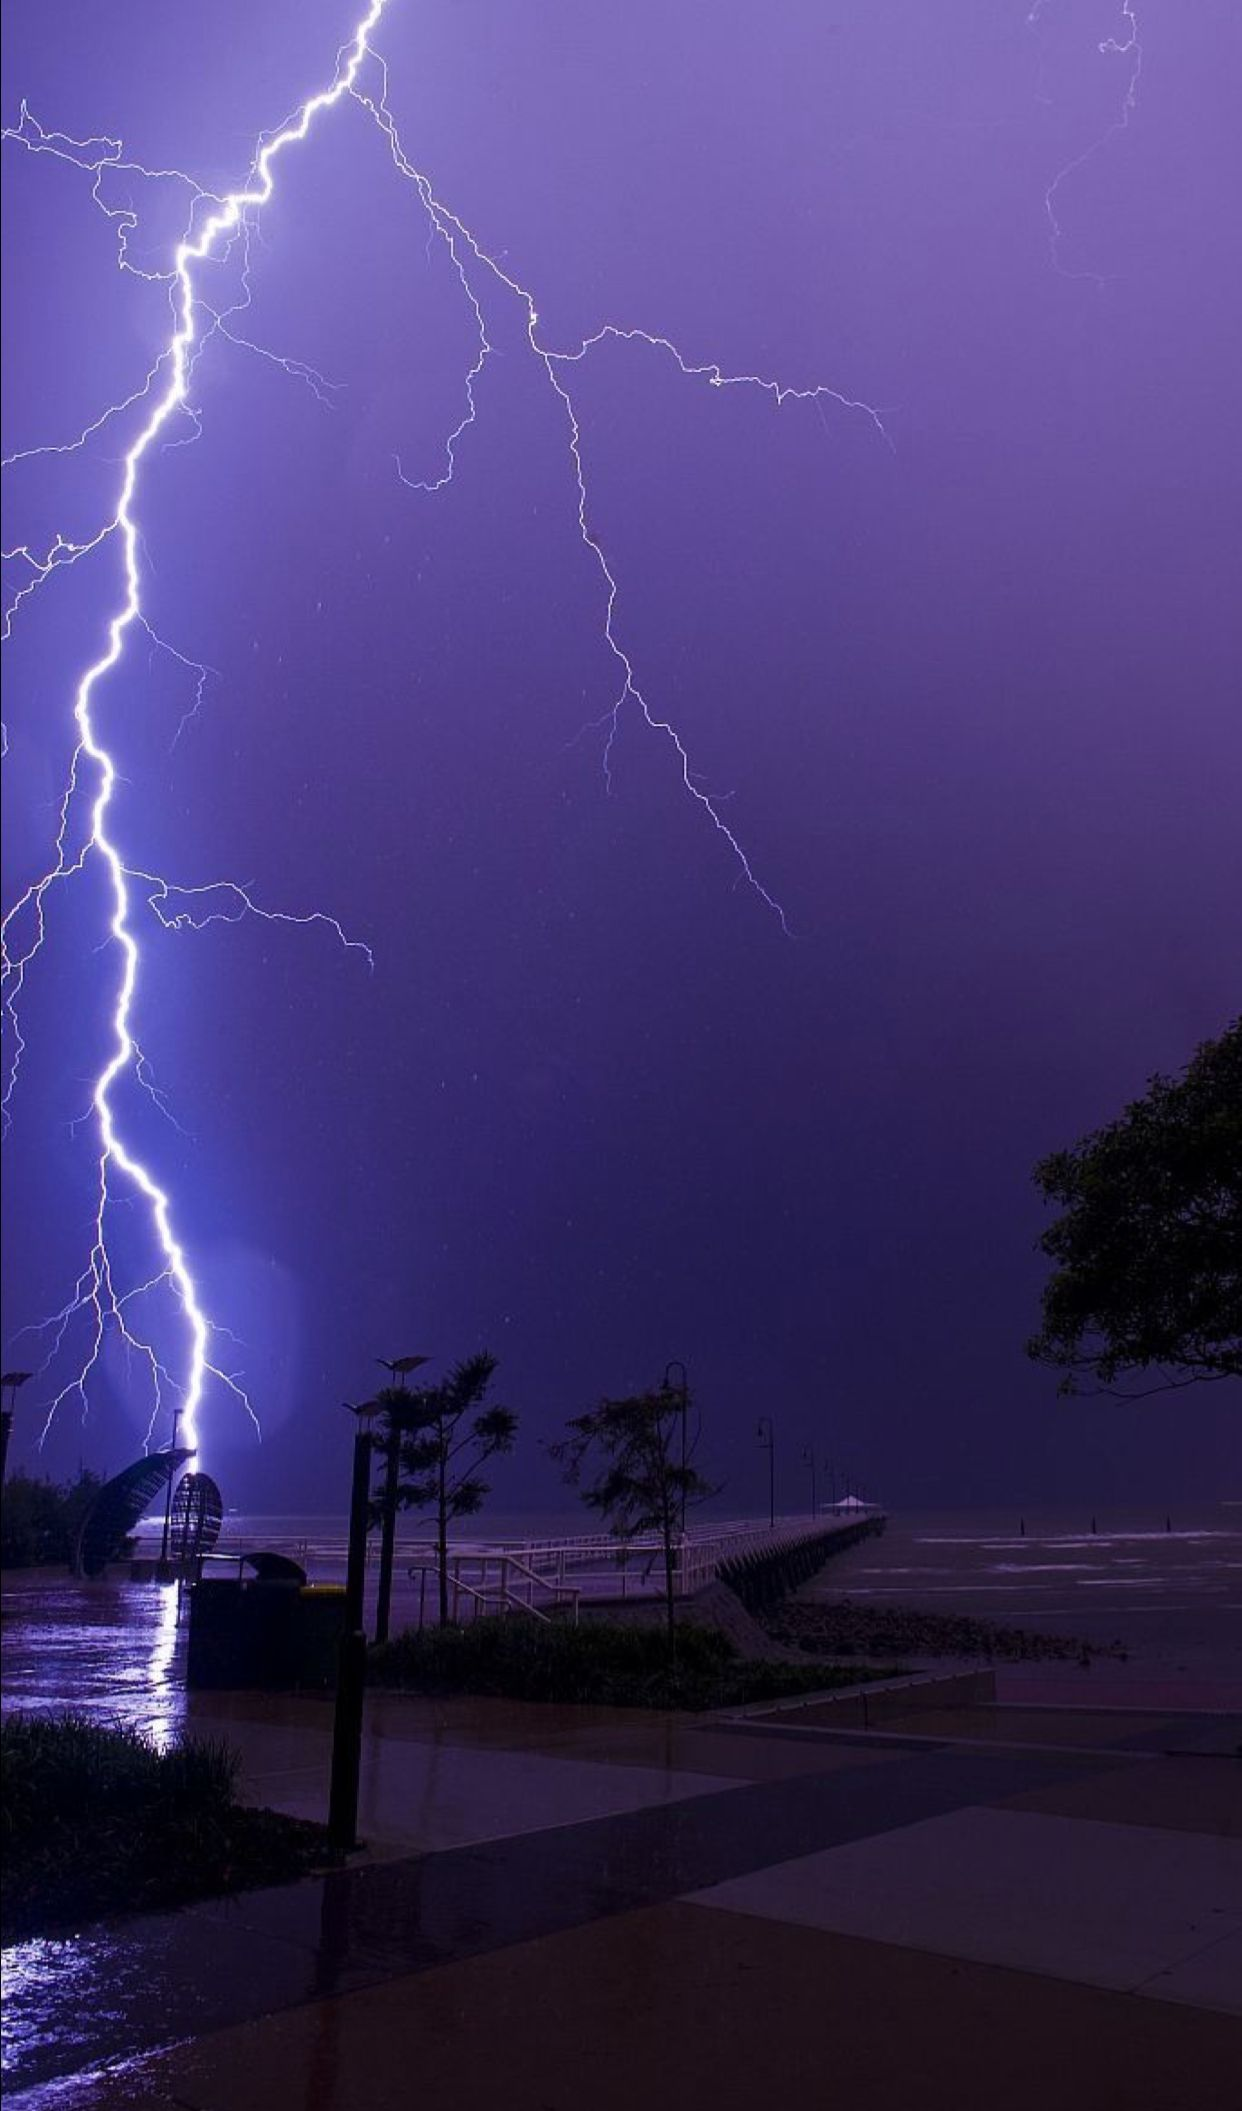 Pin by T on Nature in 2020 Lightning photography, Nature